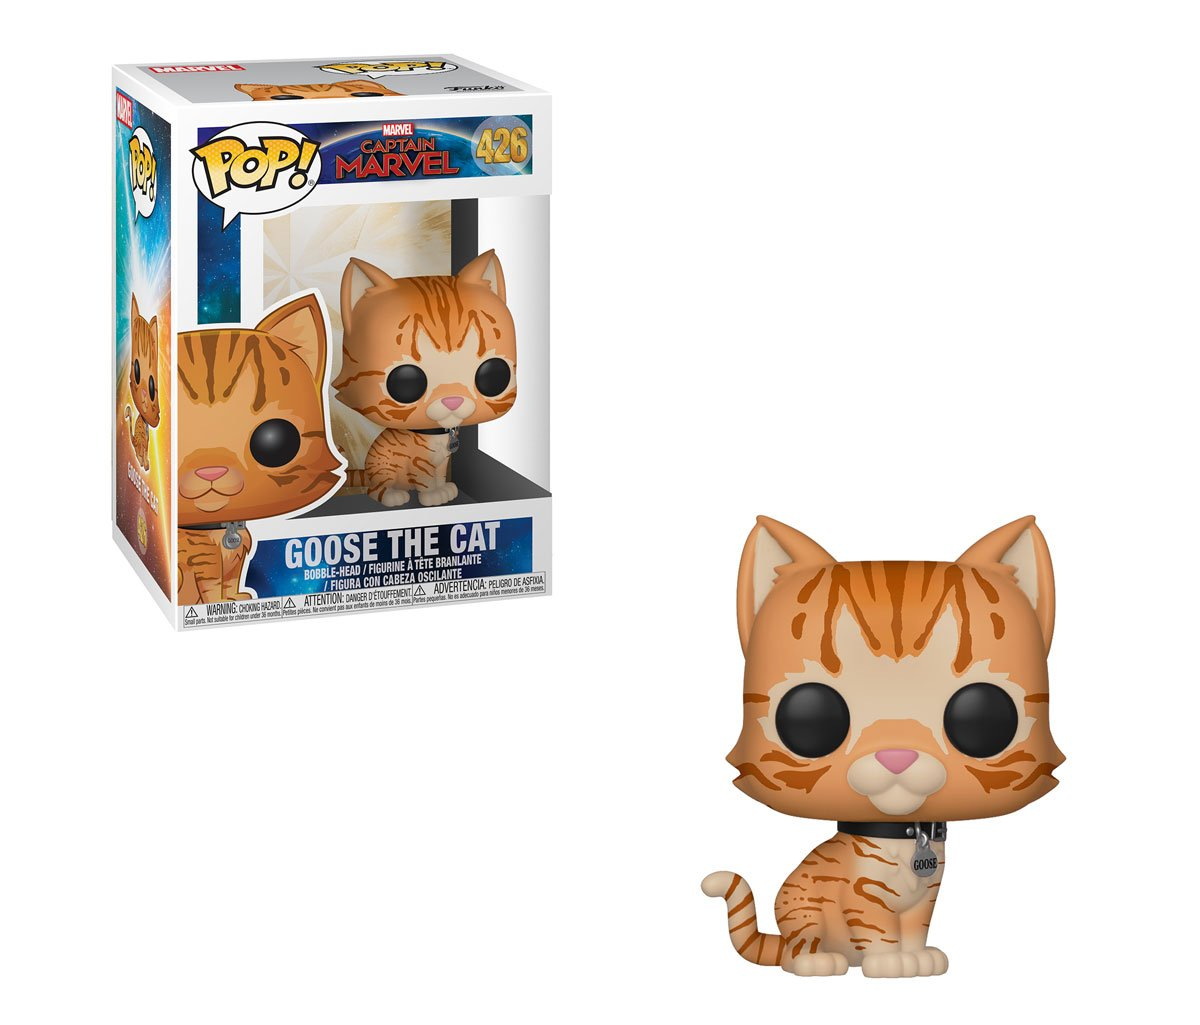 RT & follow @OriginalFunko for a chance to WIN a Goose the Cat Pop! #CaptainMarvel